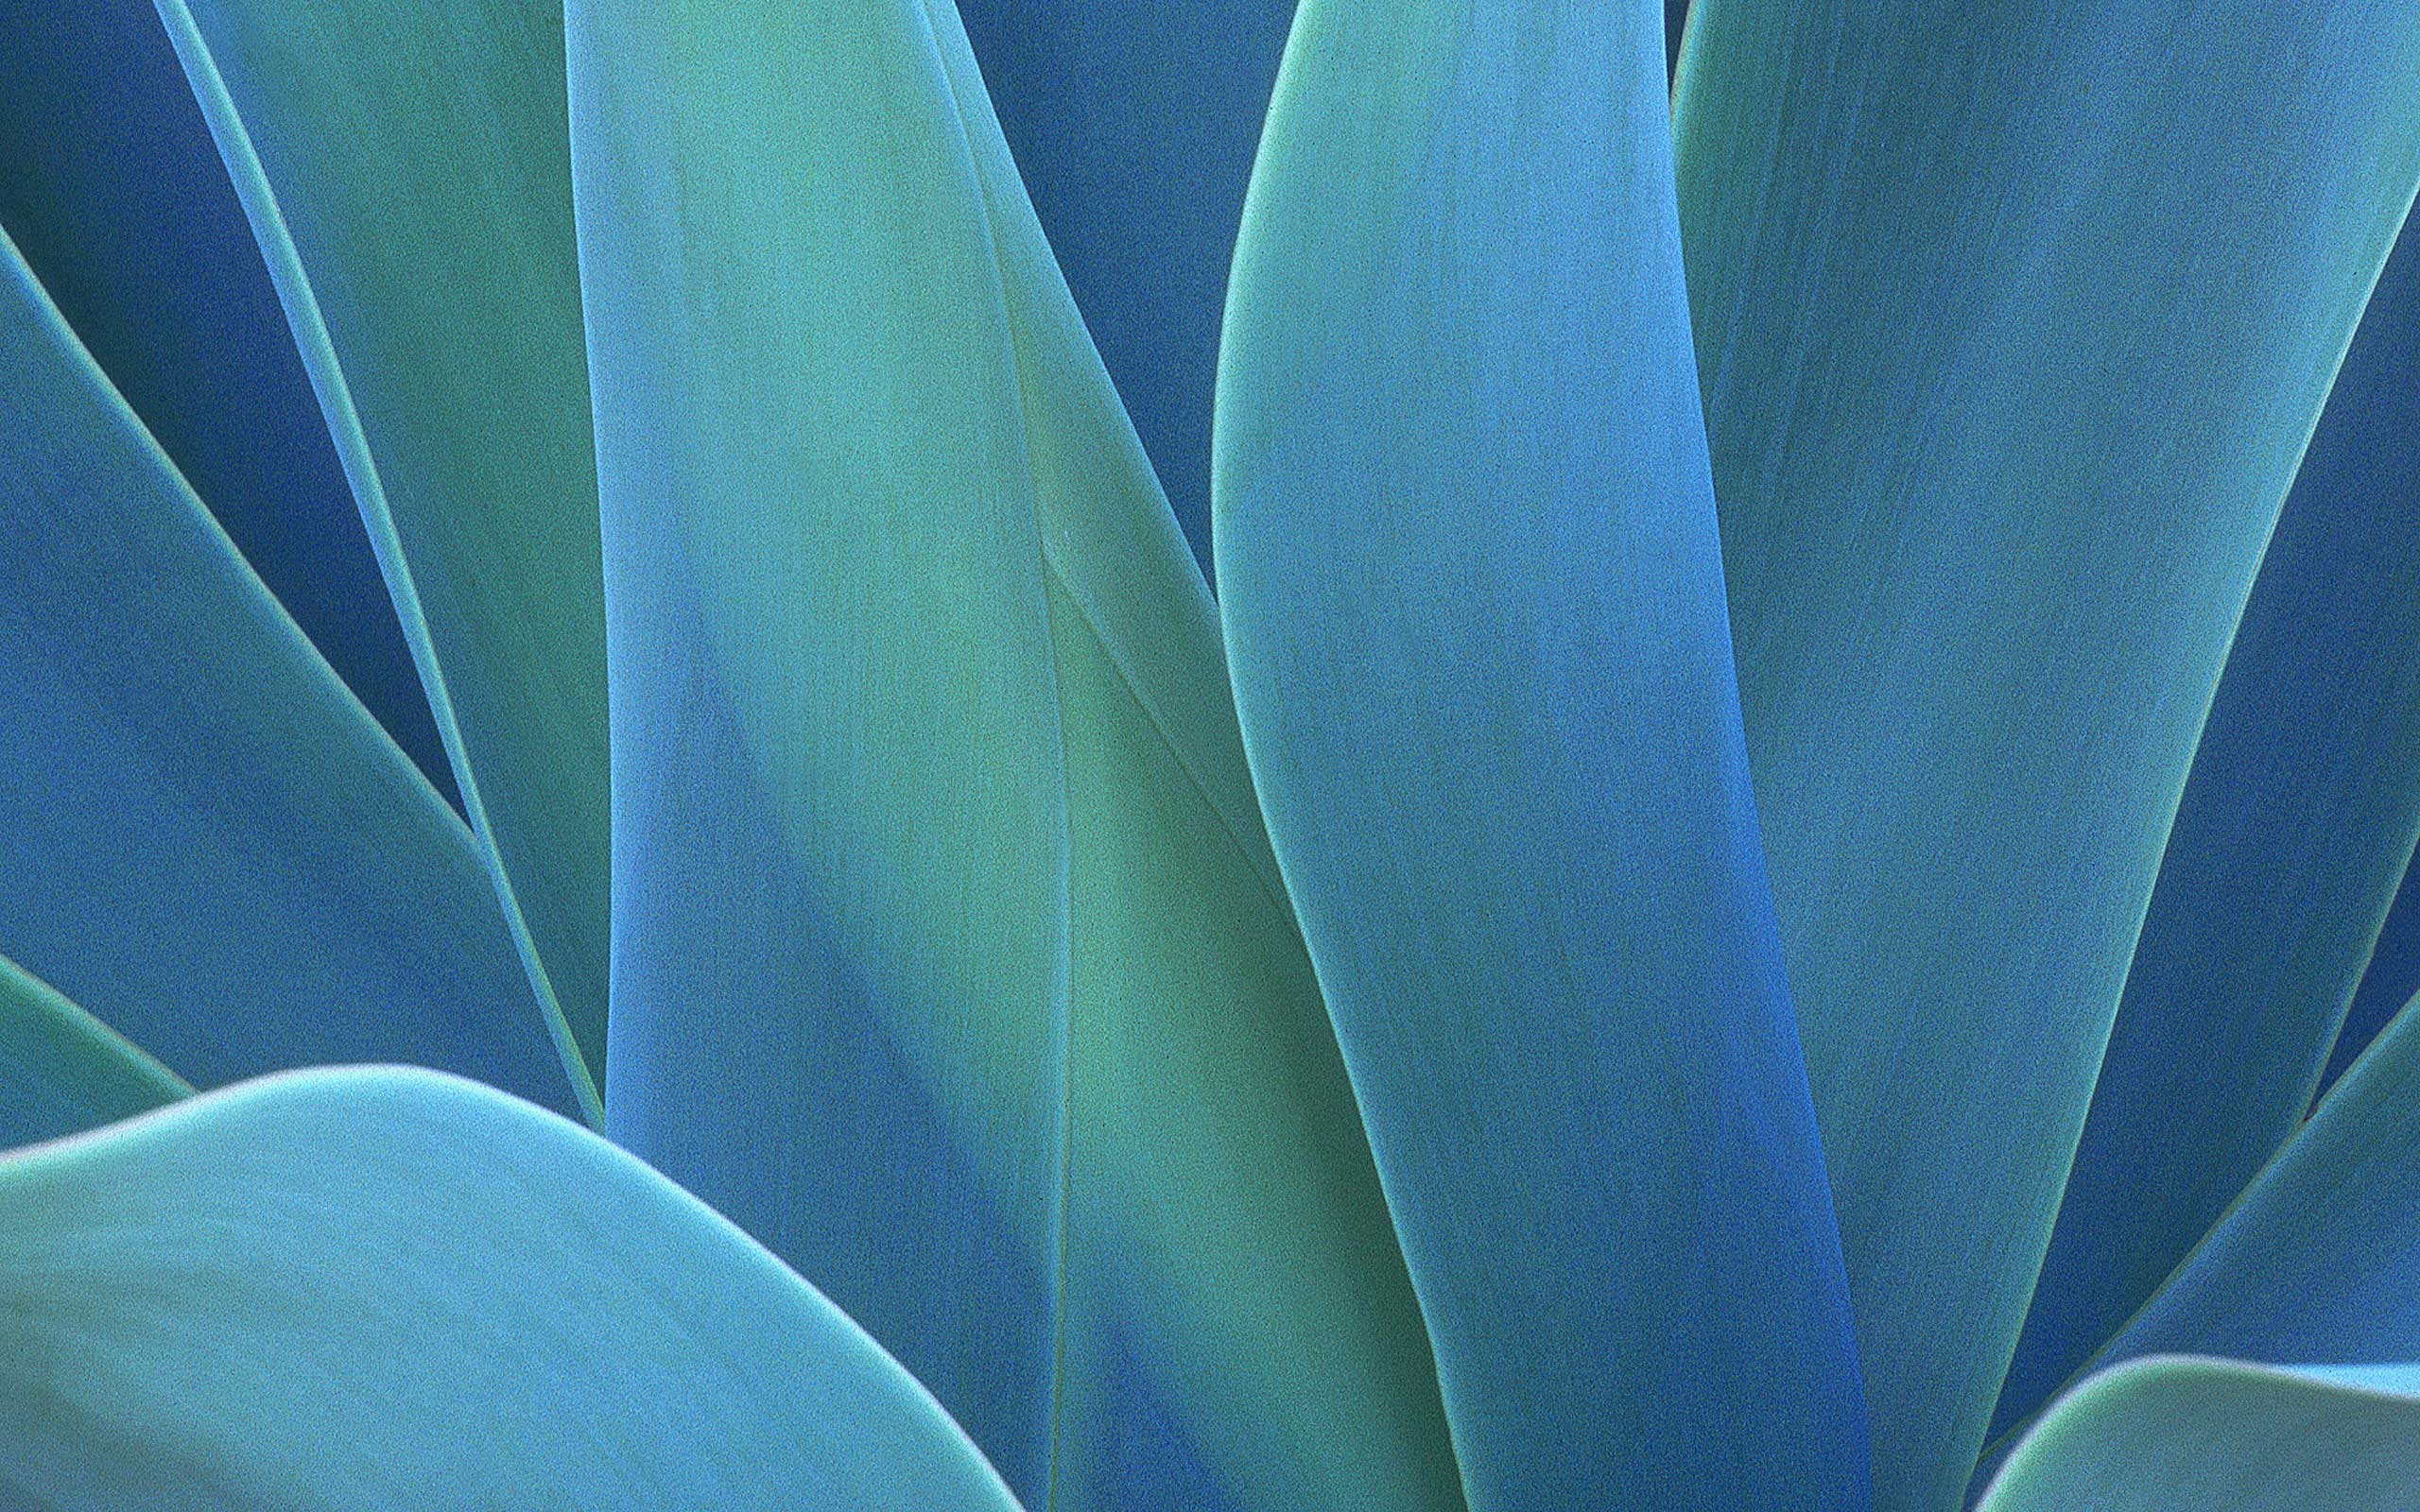 Abstraction from plants - Wallpaper for Mac OS X Tiger - High Definition